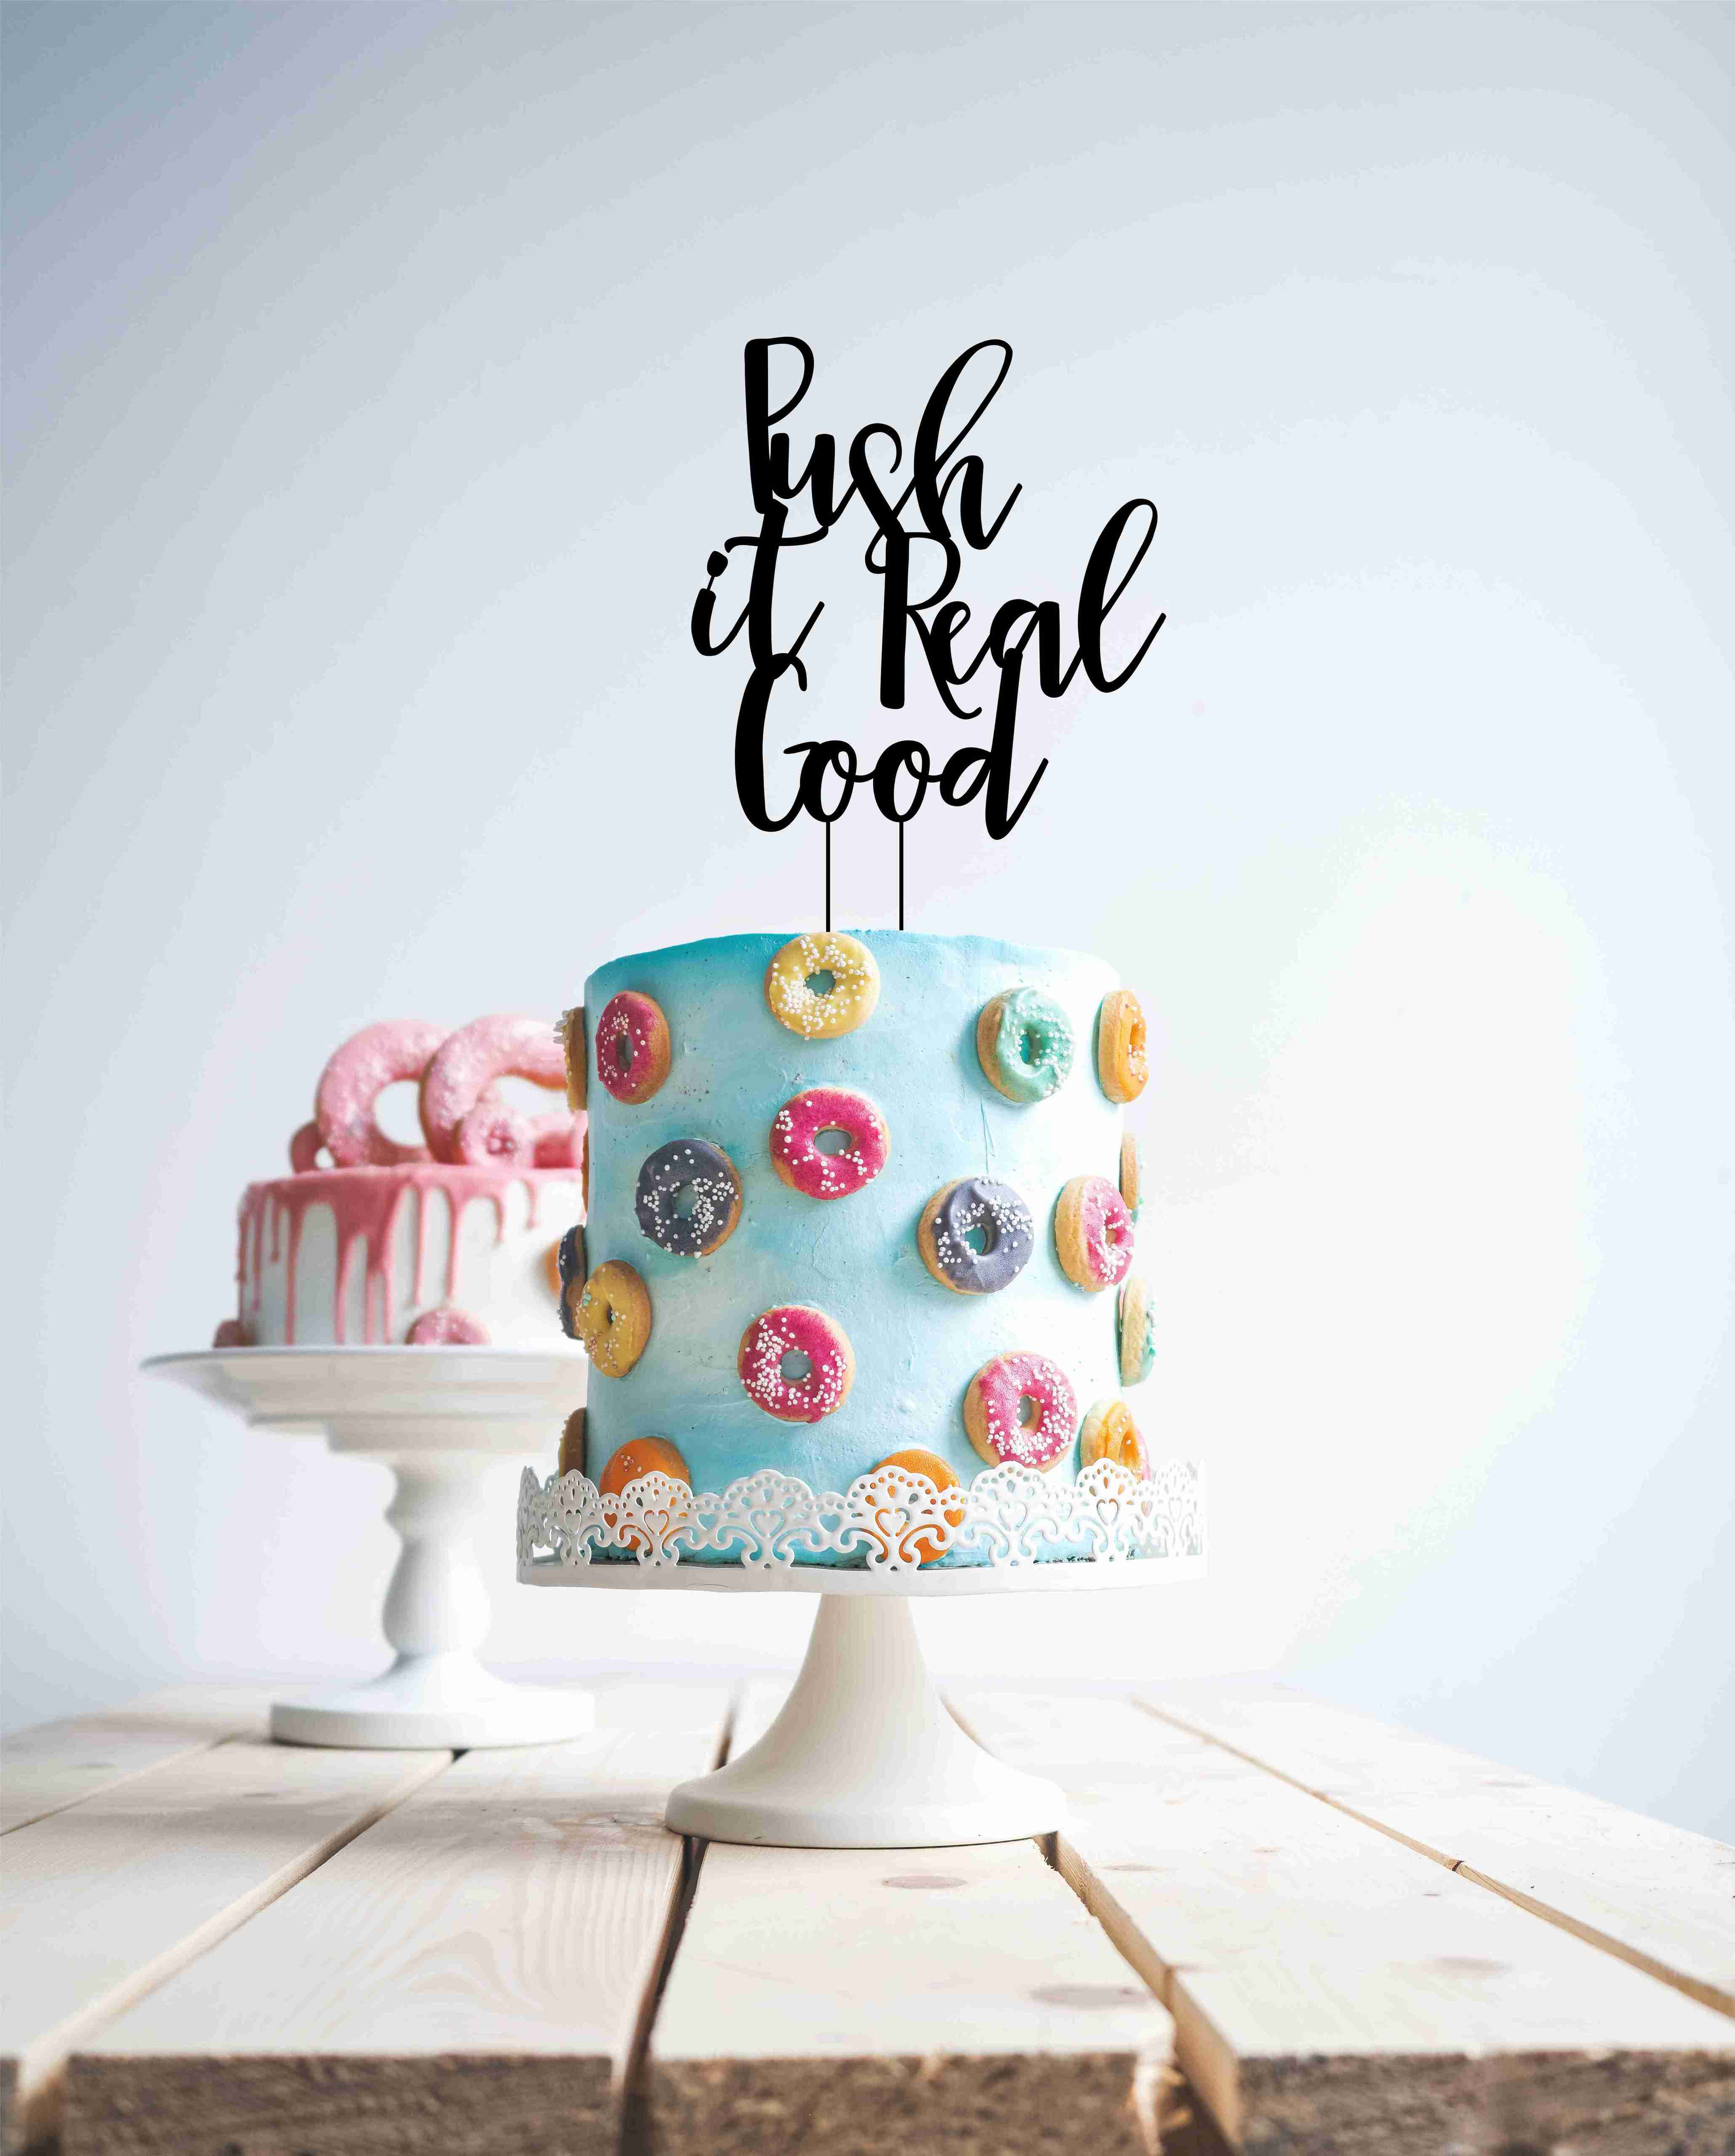 Push it real good - Wood Cake Topper / wooden topper